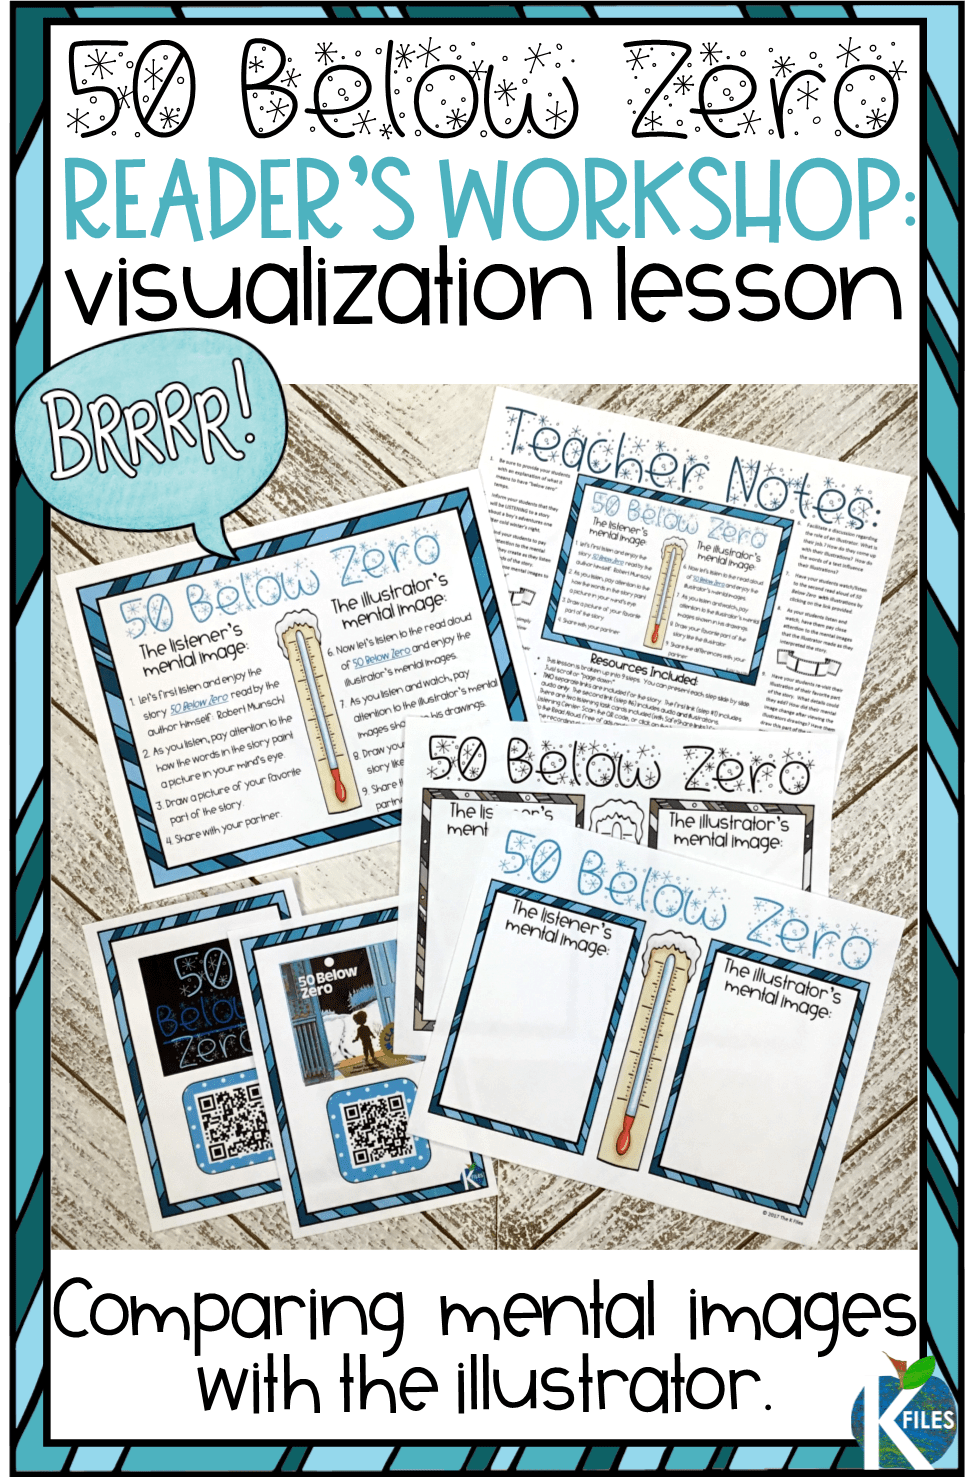 Are you looking for powerful visualizing activities to help your students create mental images during your Reader's Workshop? This humorous winter read aloud is perfect for visualizing details in a text. Your students will build their visualization reading strategies while listening to the story first without illustrations and then illustrate their own mental image. Excellent mental images activities for kindergarten, first grade and all grade levels!